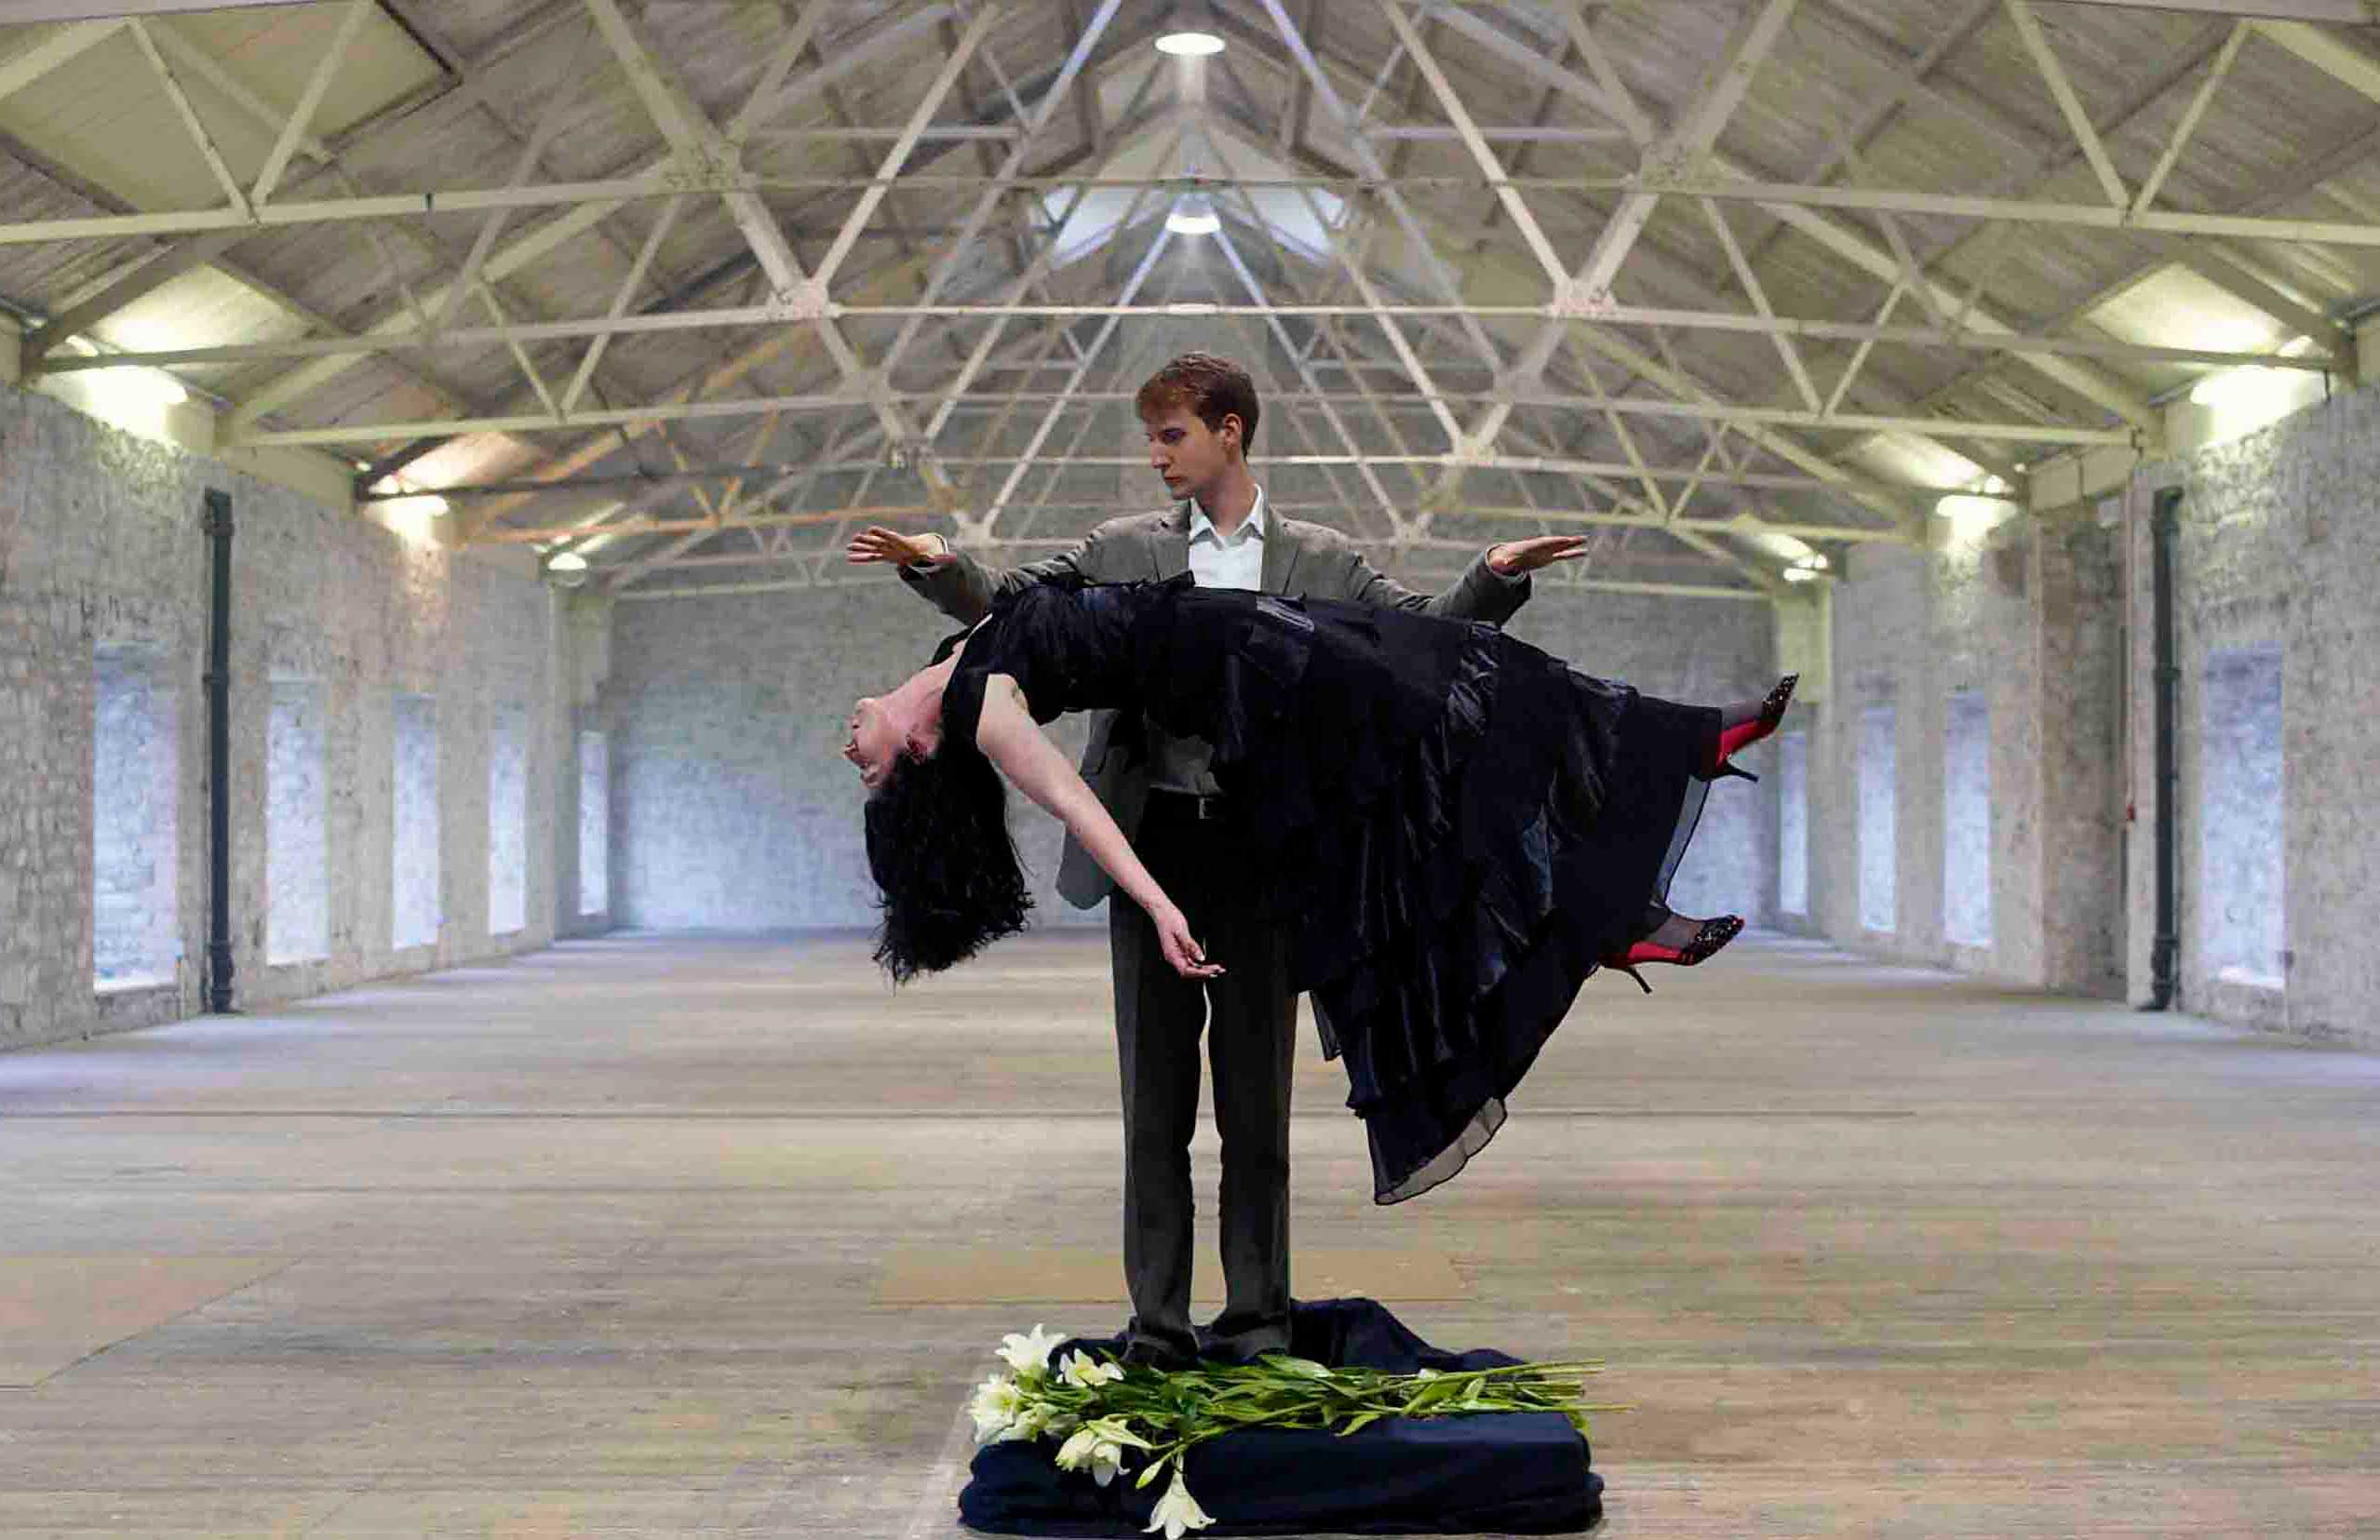 A thumbnail of artist Francesca Steele levitating lillies in an empty warehouse in front of magician Christopher Howell.